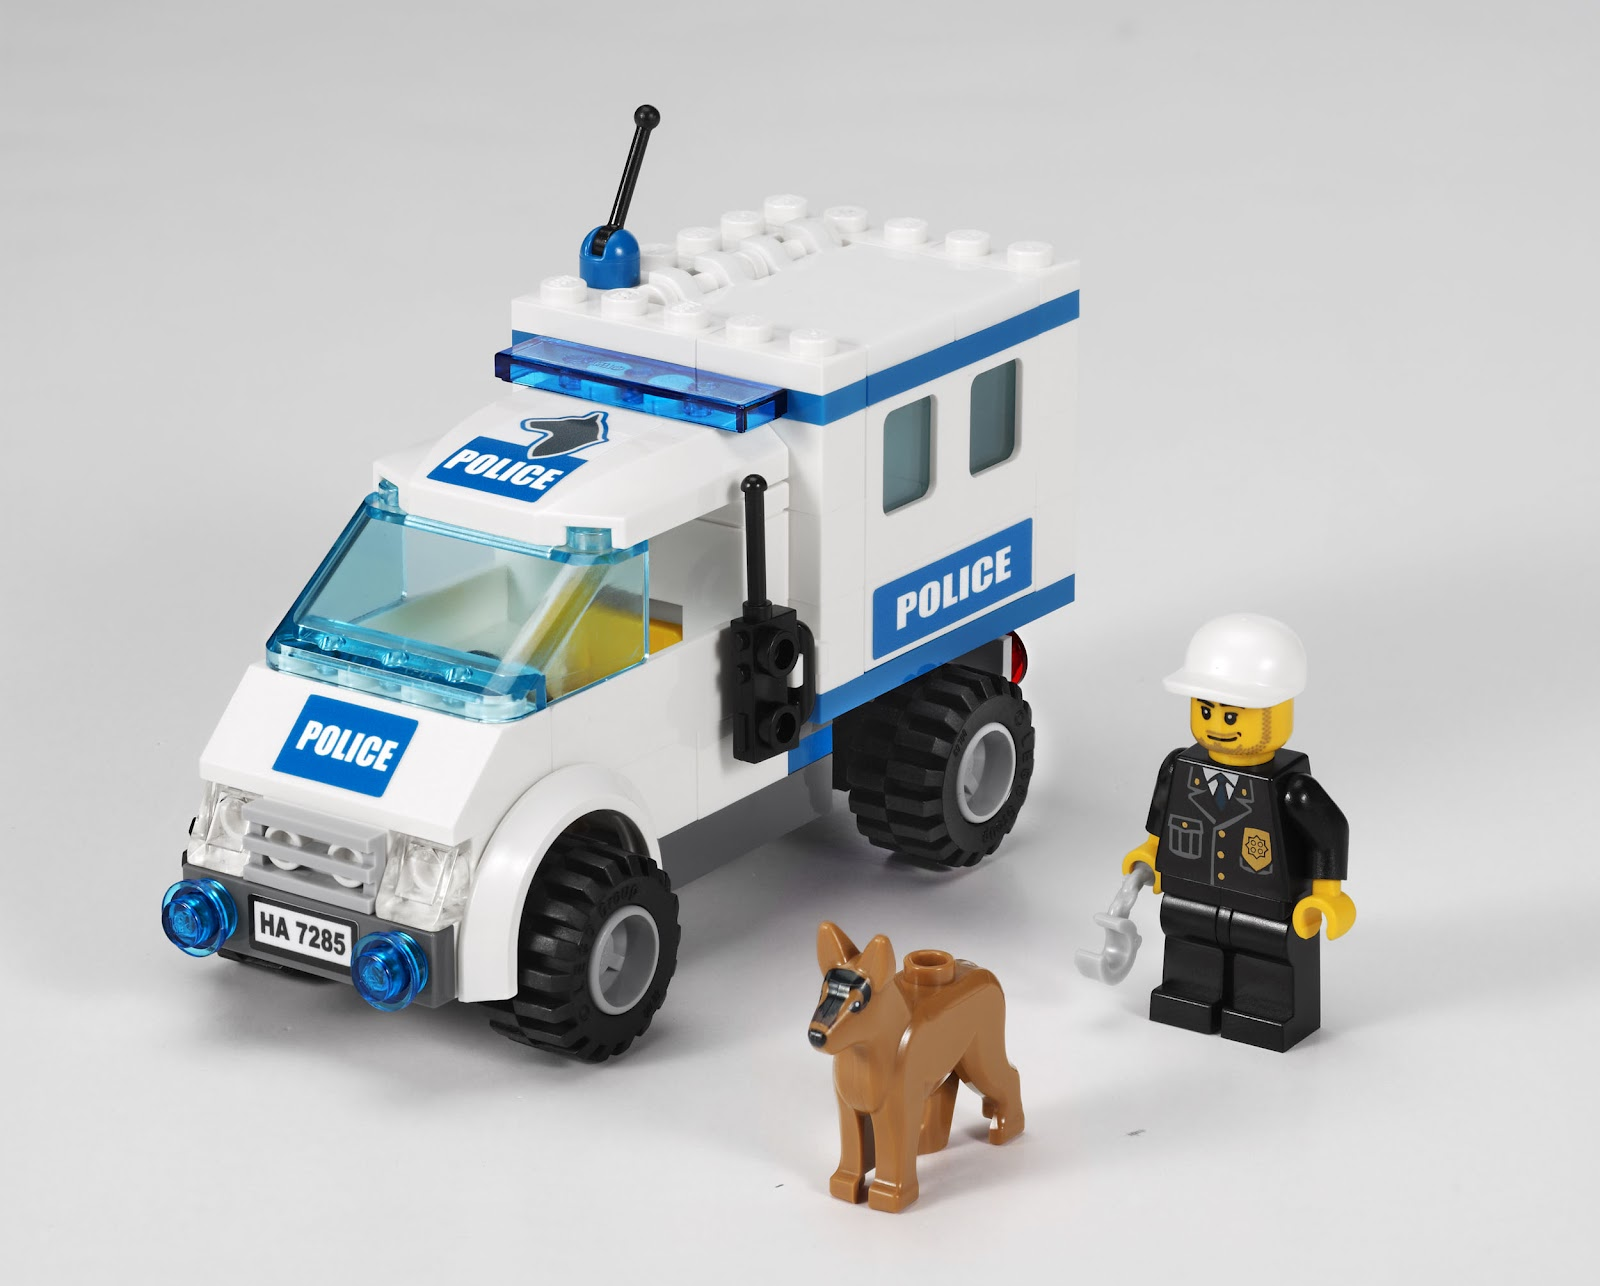 Lego Police Lego City Police 60046 Helicopter Surveillance And Lego